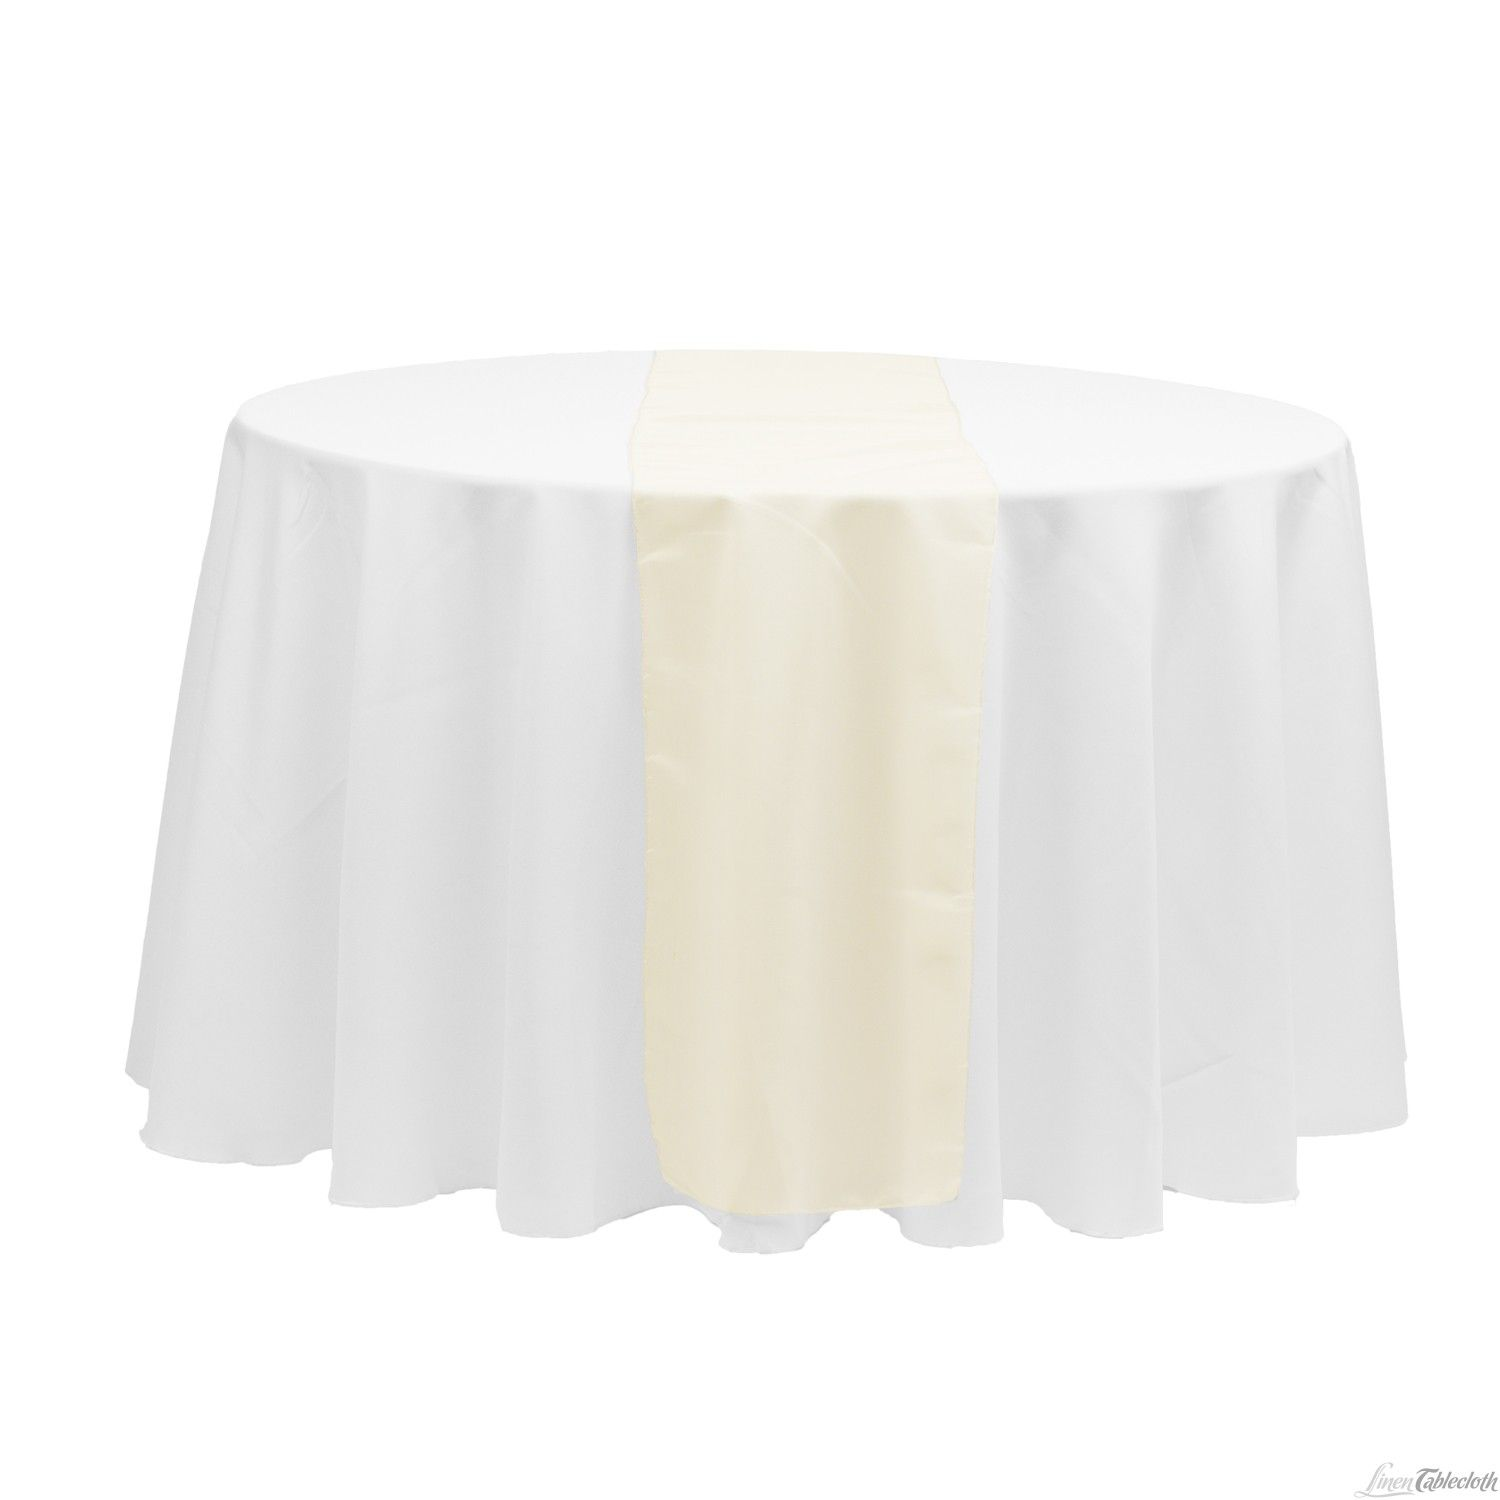 14 X 108 In Organza Table Runner Ivory Green Table Runner Table Runners Linen Table Runner